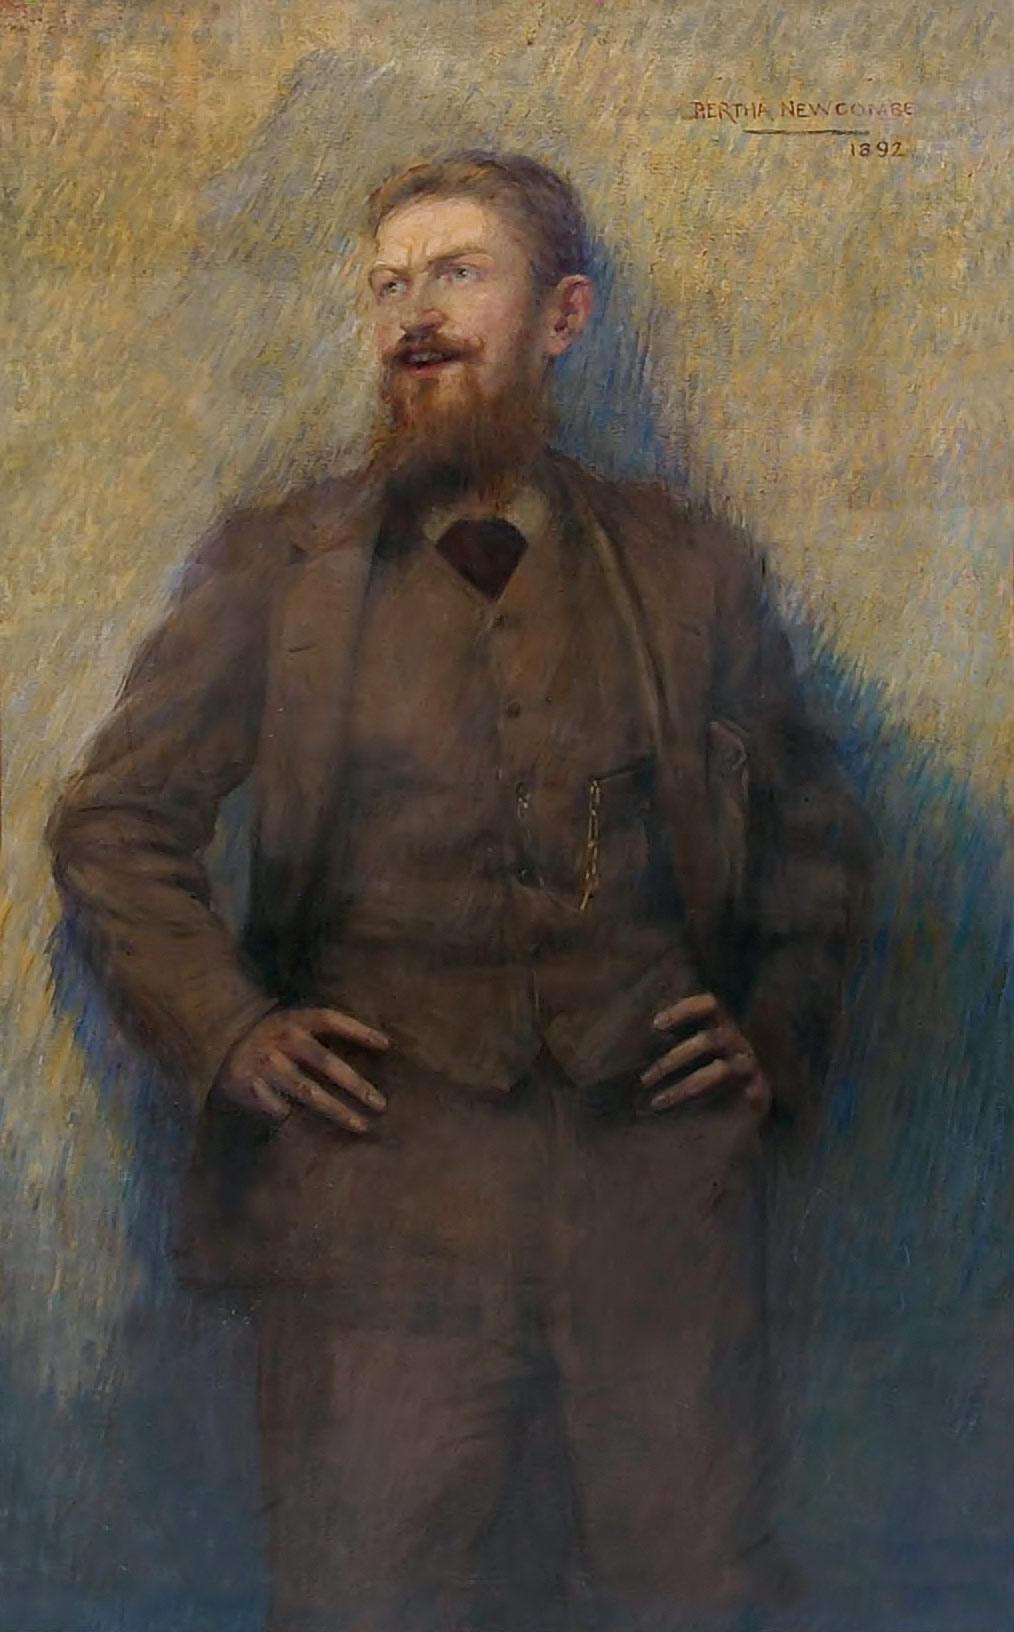 william pierce a reminiscence national vanguard george bernard shaw by bertha newcombe 1892